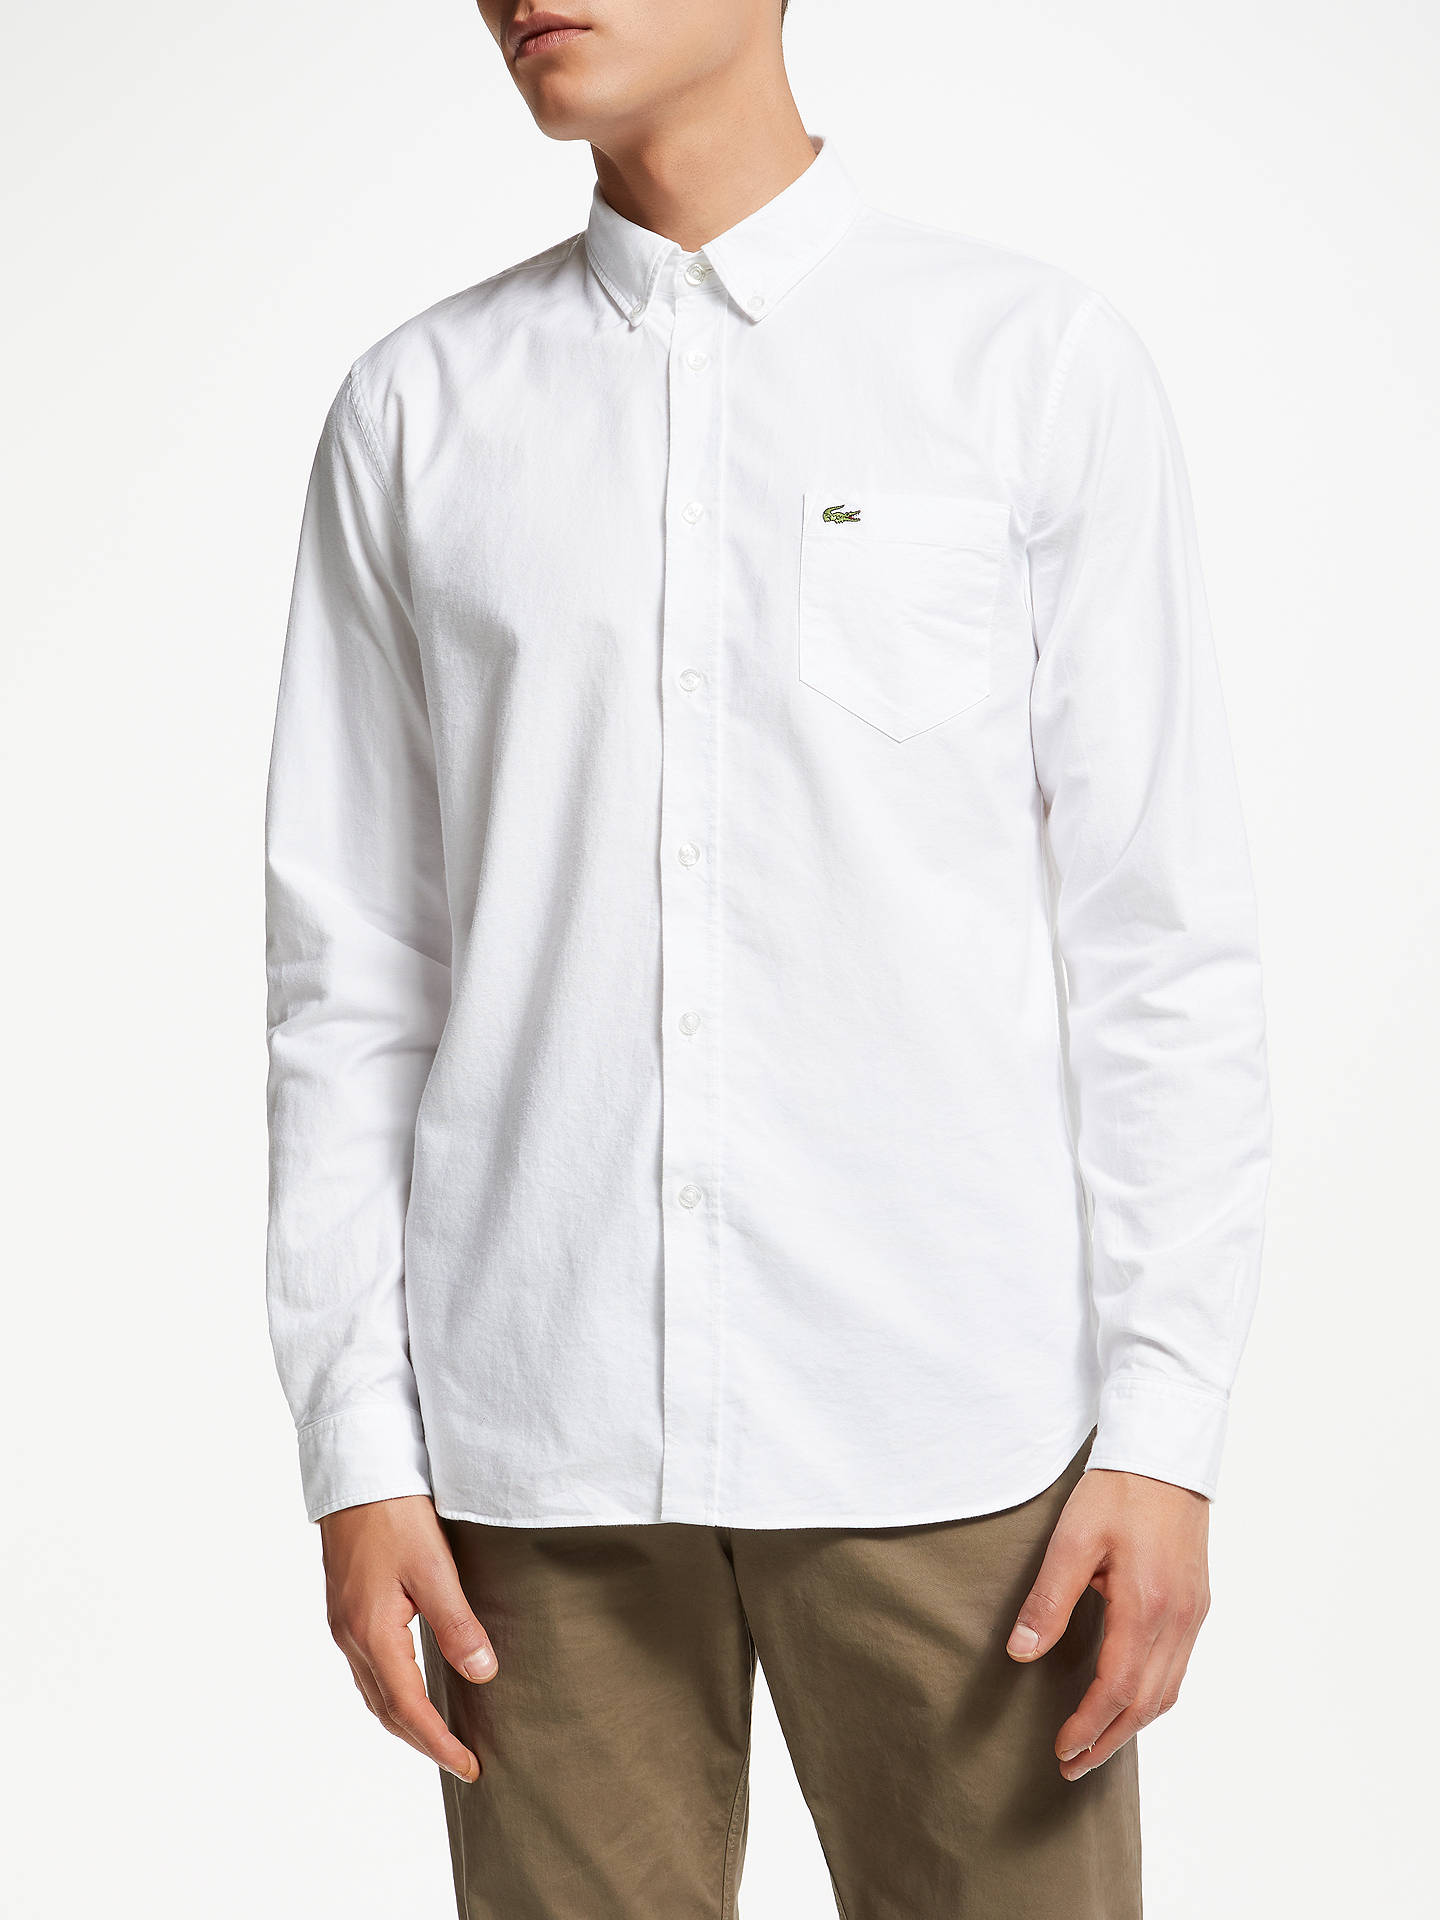 670df154c Buy Lacoste Long Sleeve Oxford Shirt